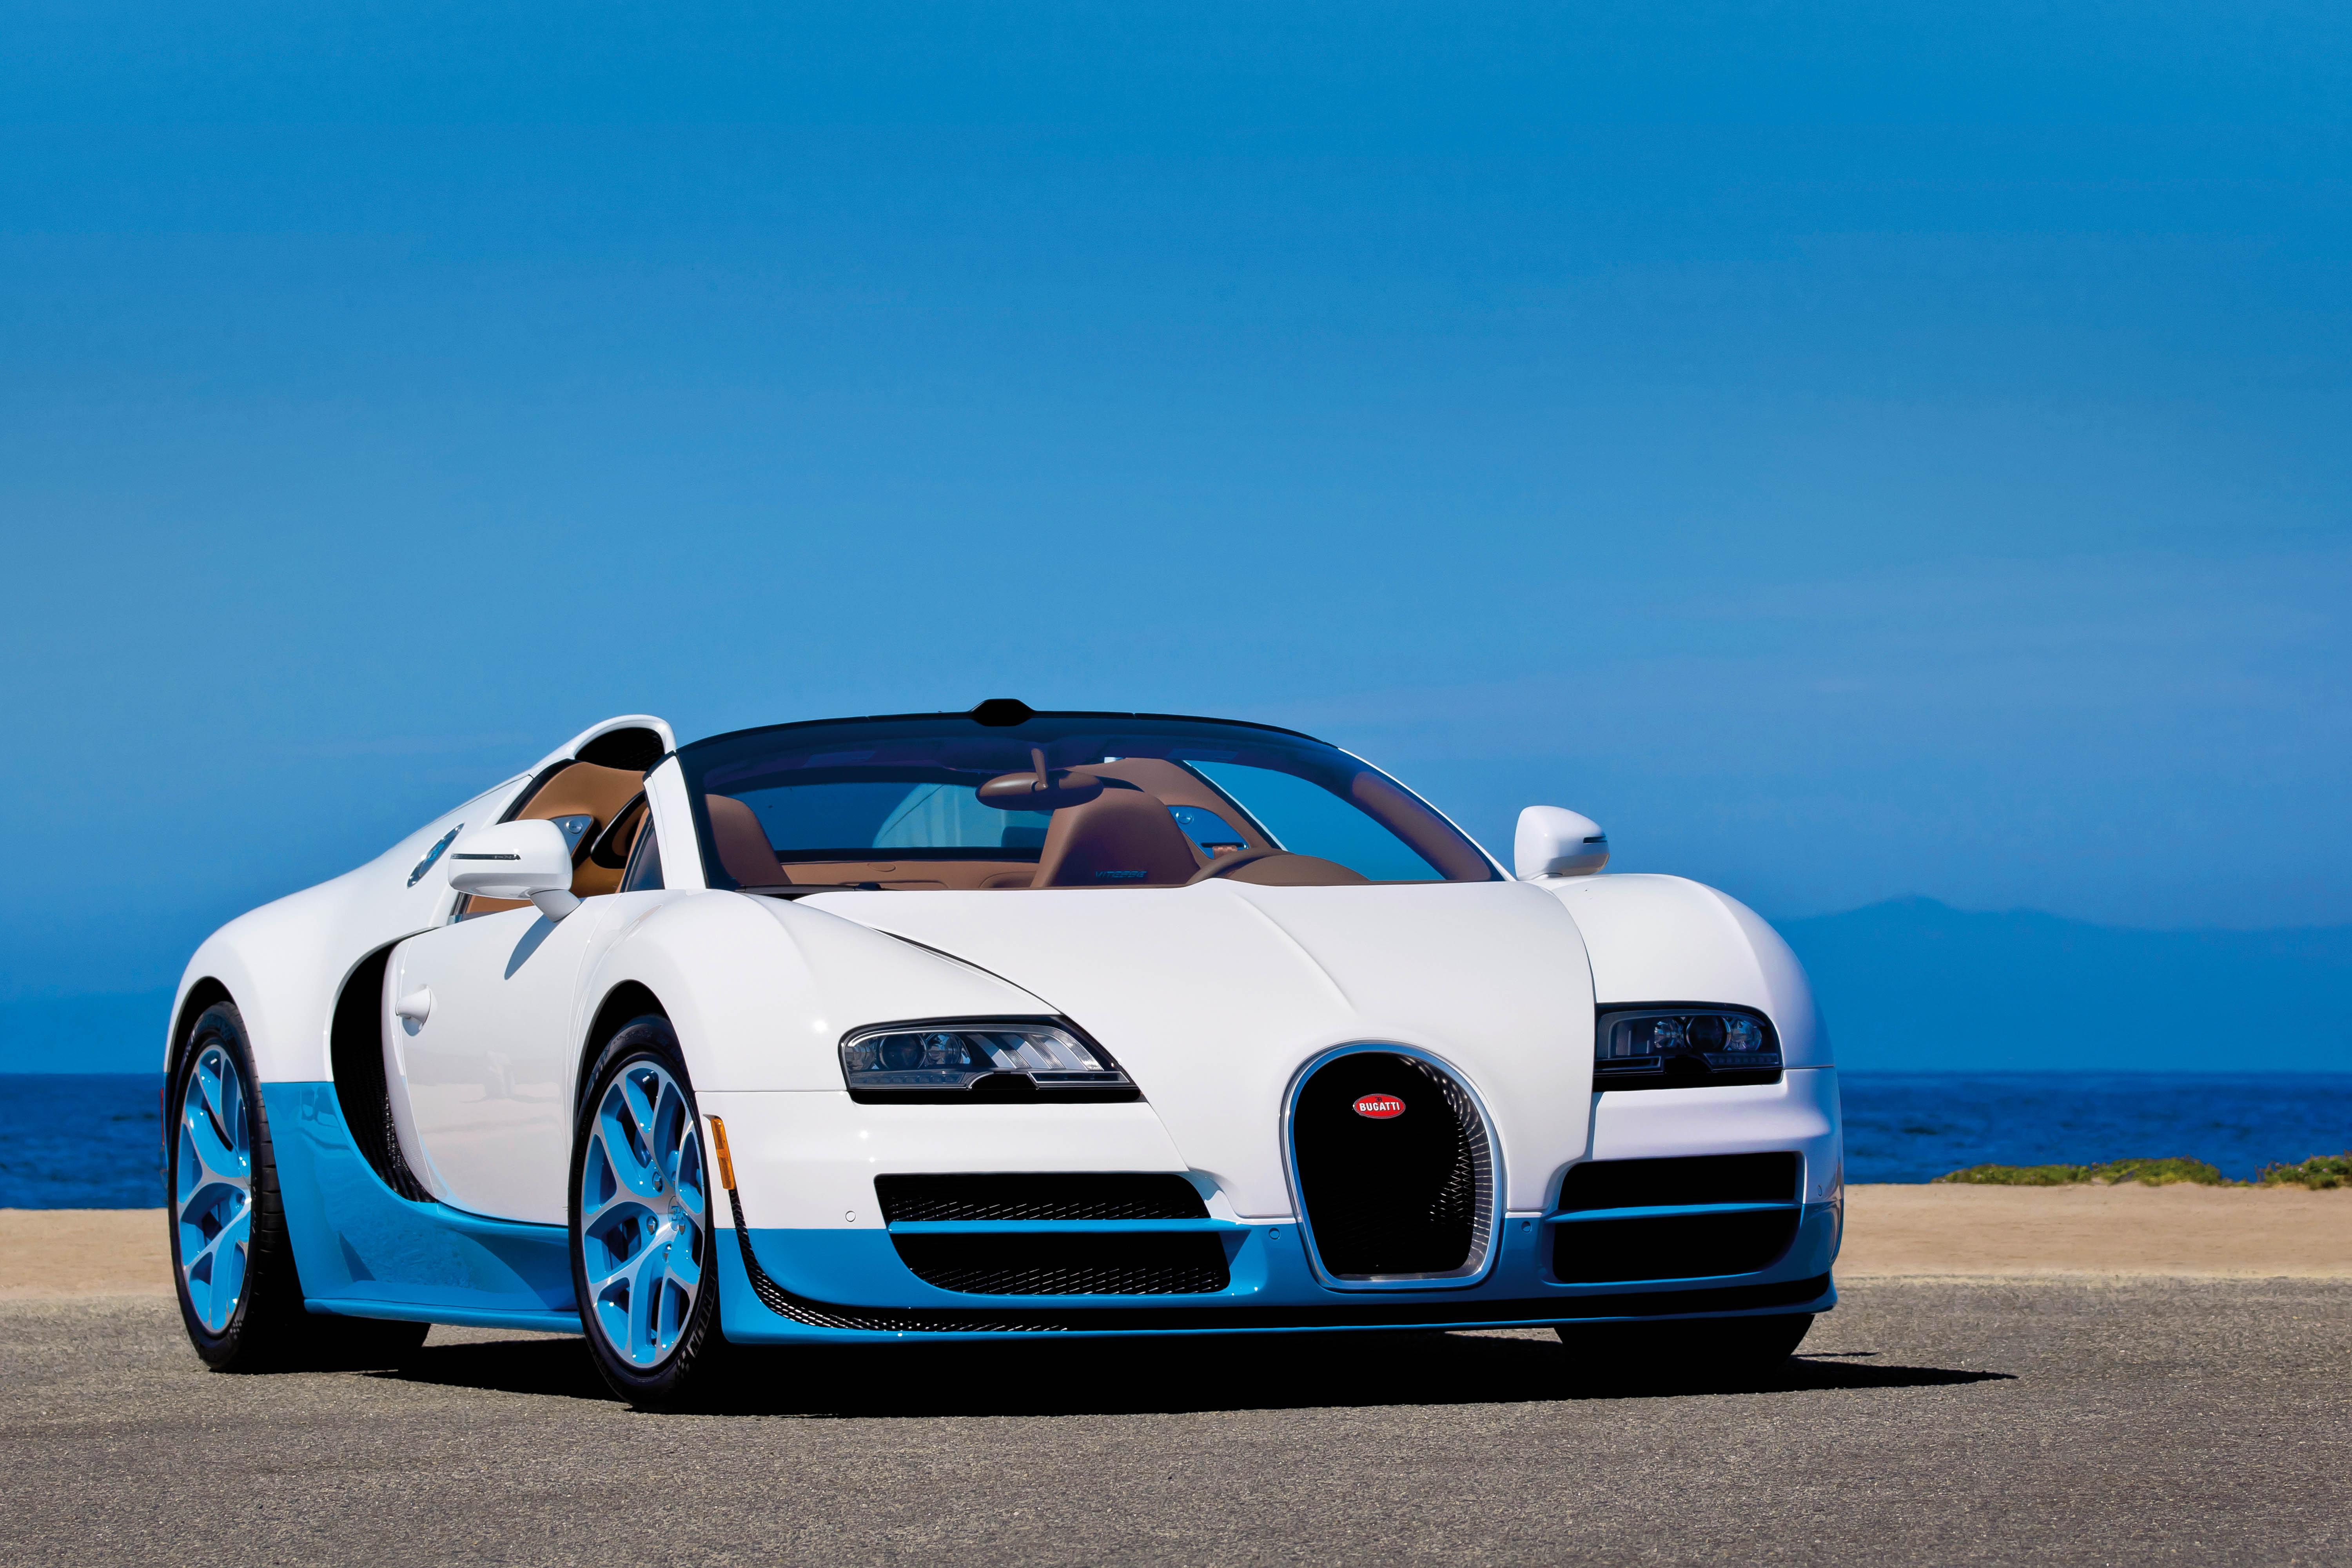 450th and final Bugatti Veyron to bow in Geneva